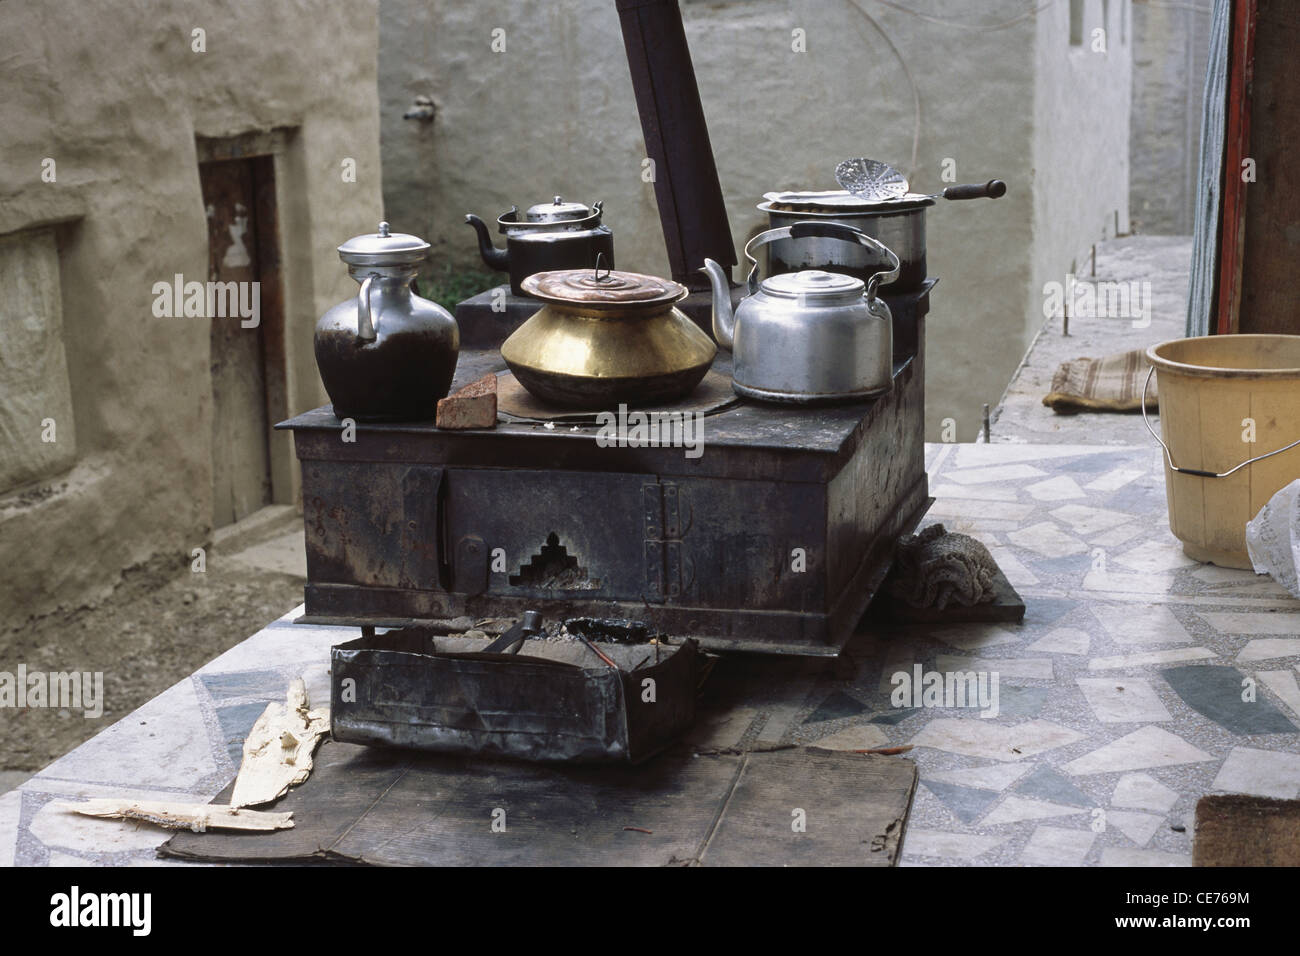 Kitchen Stove with vessels ; keylong ; himachal pradesh ; india - Stock Image